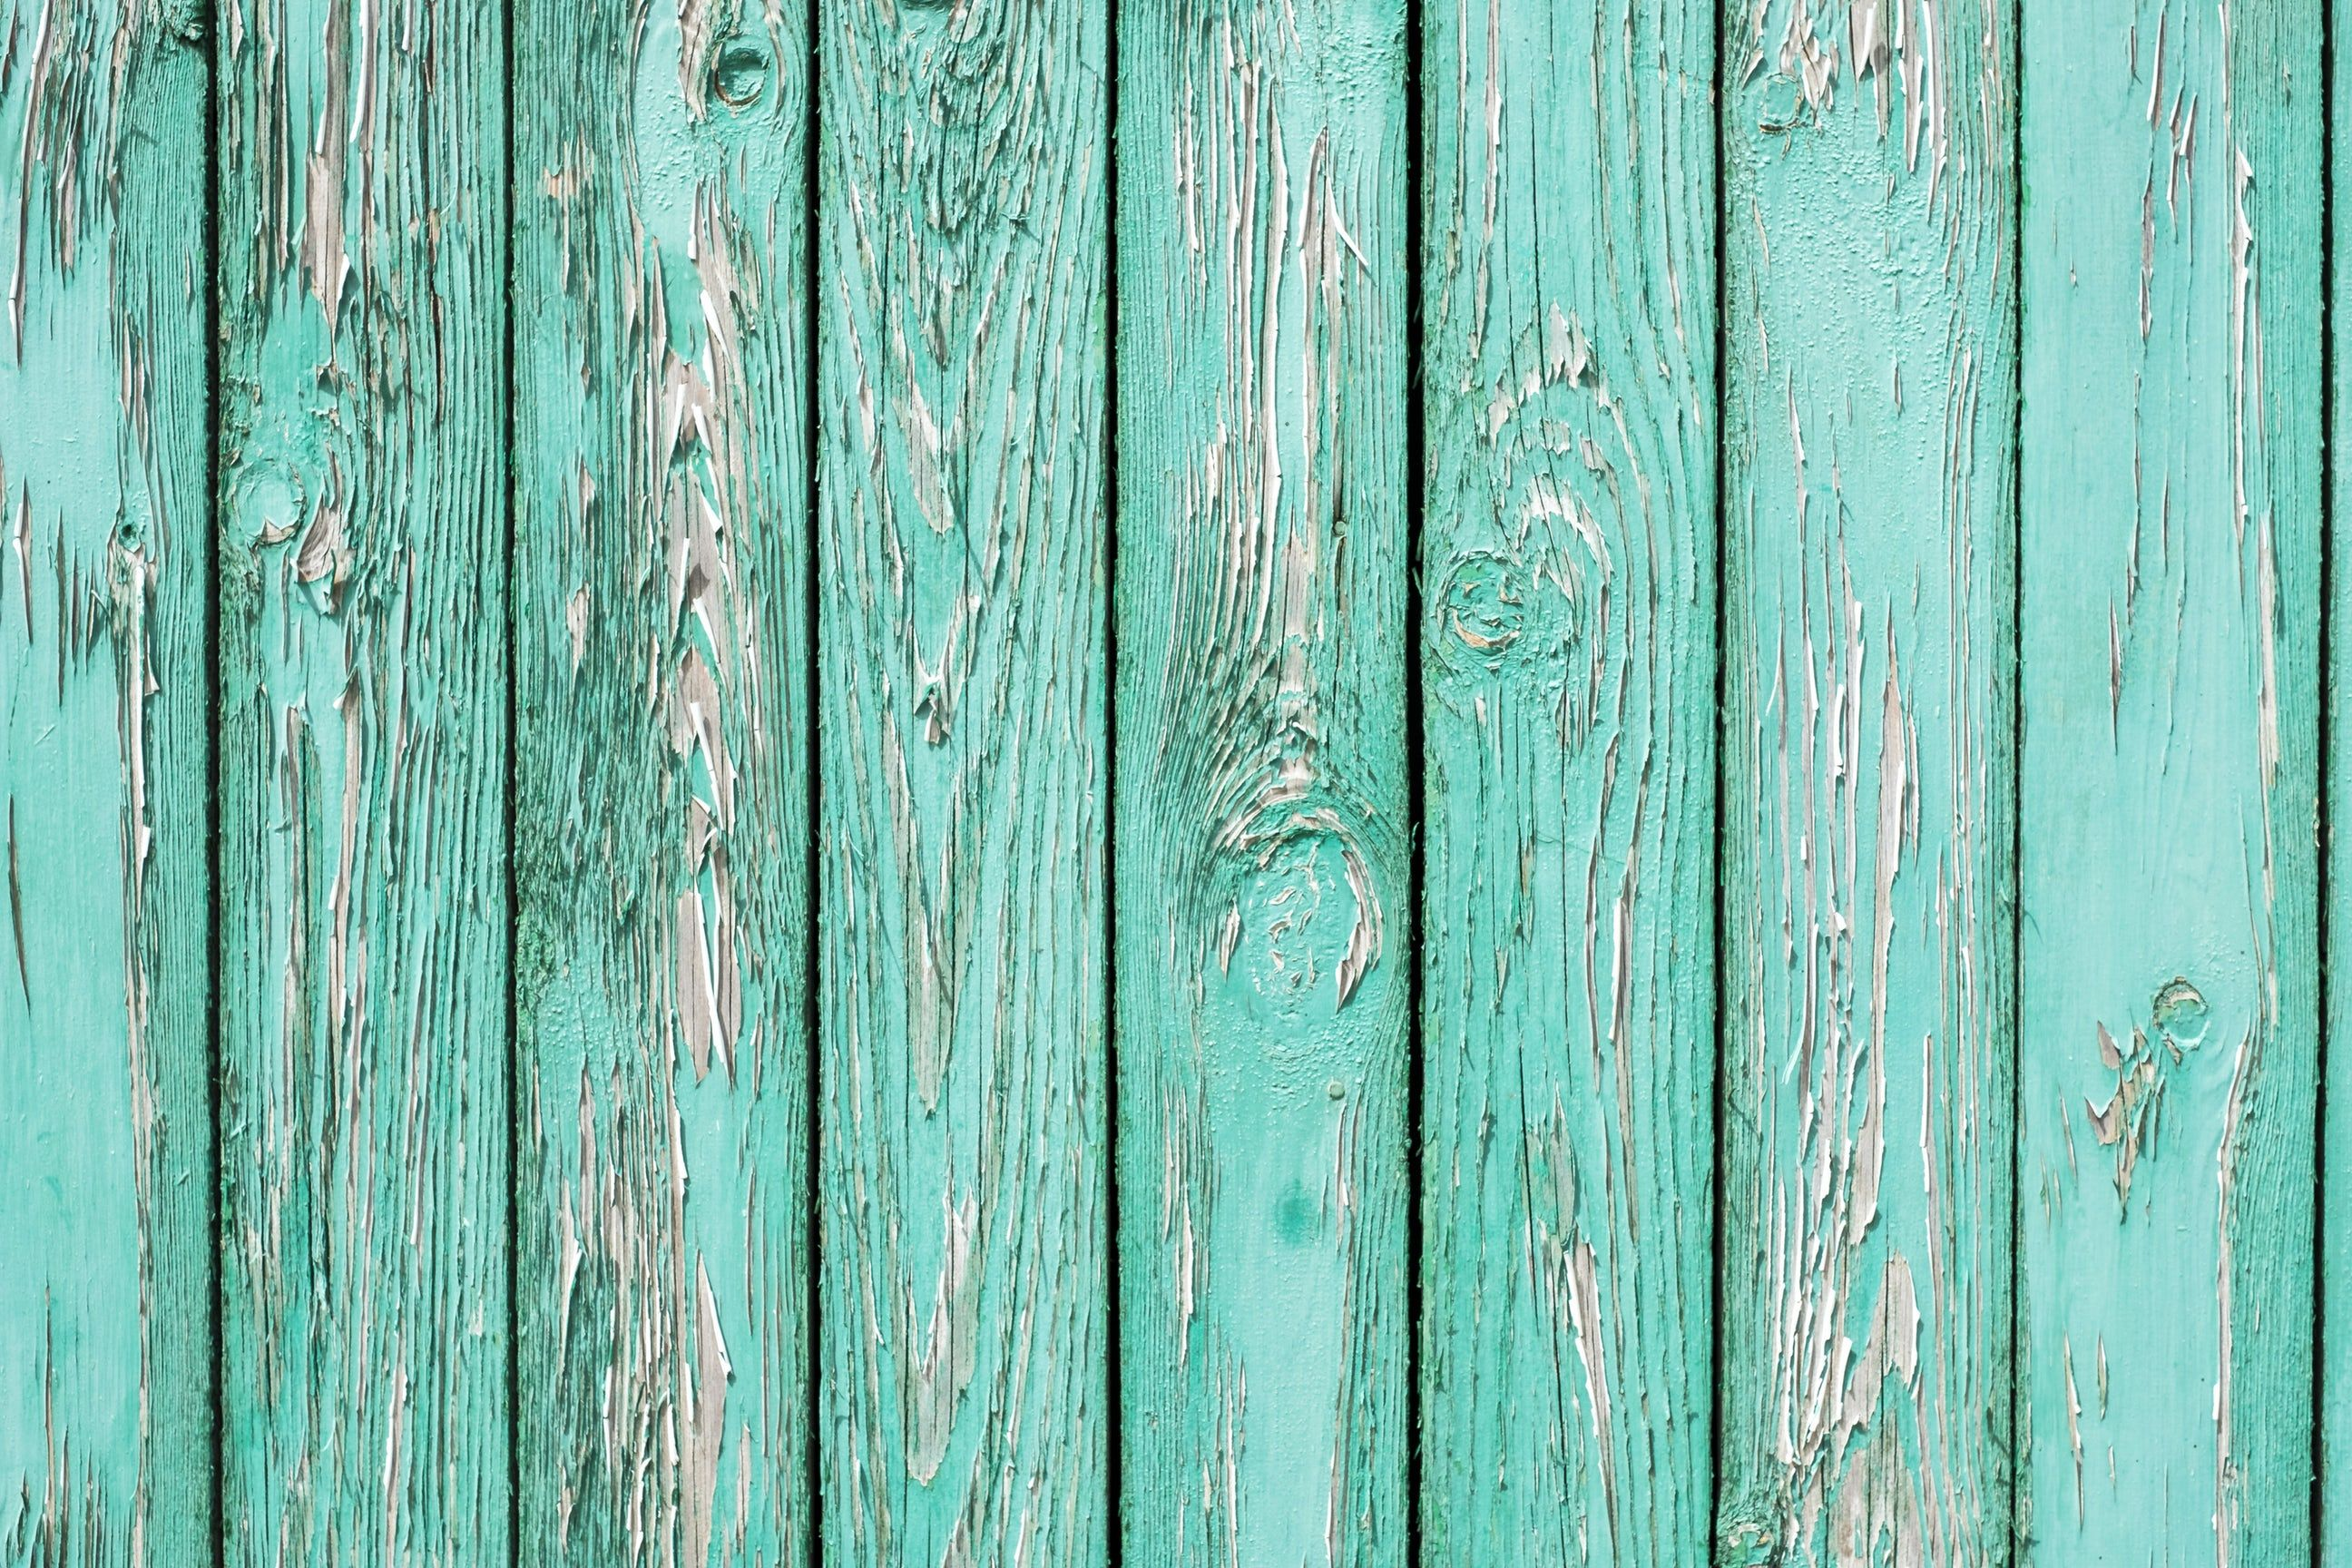 An Old Wooden Wall Painted Turquoise Cracked Paint Blue